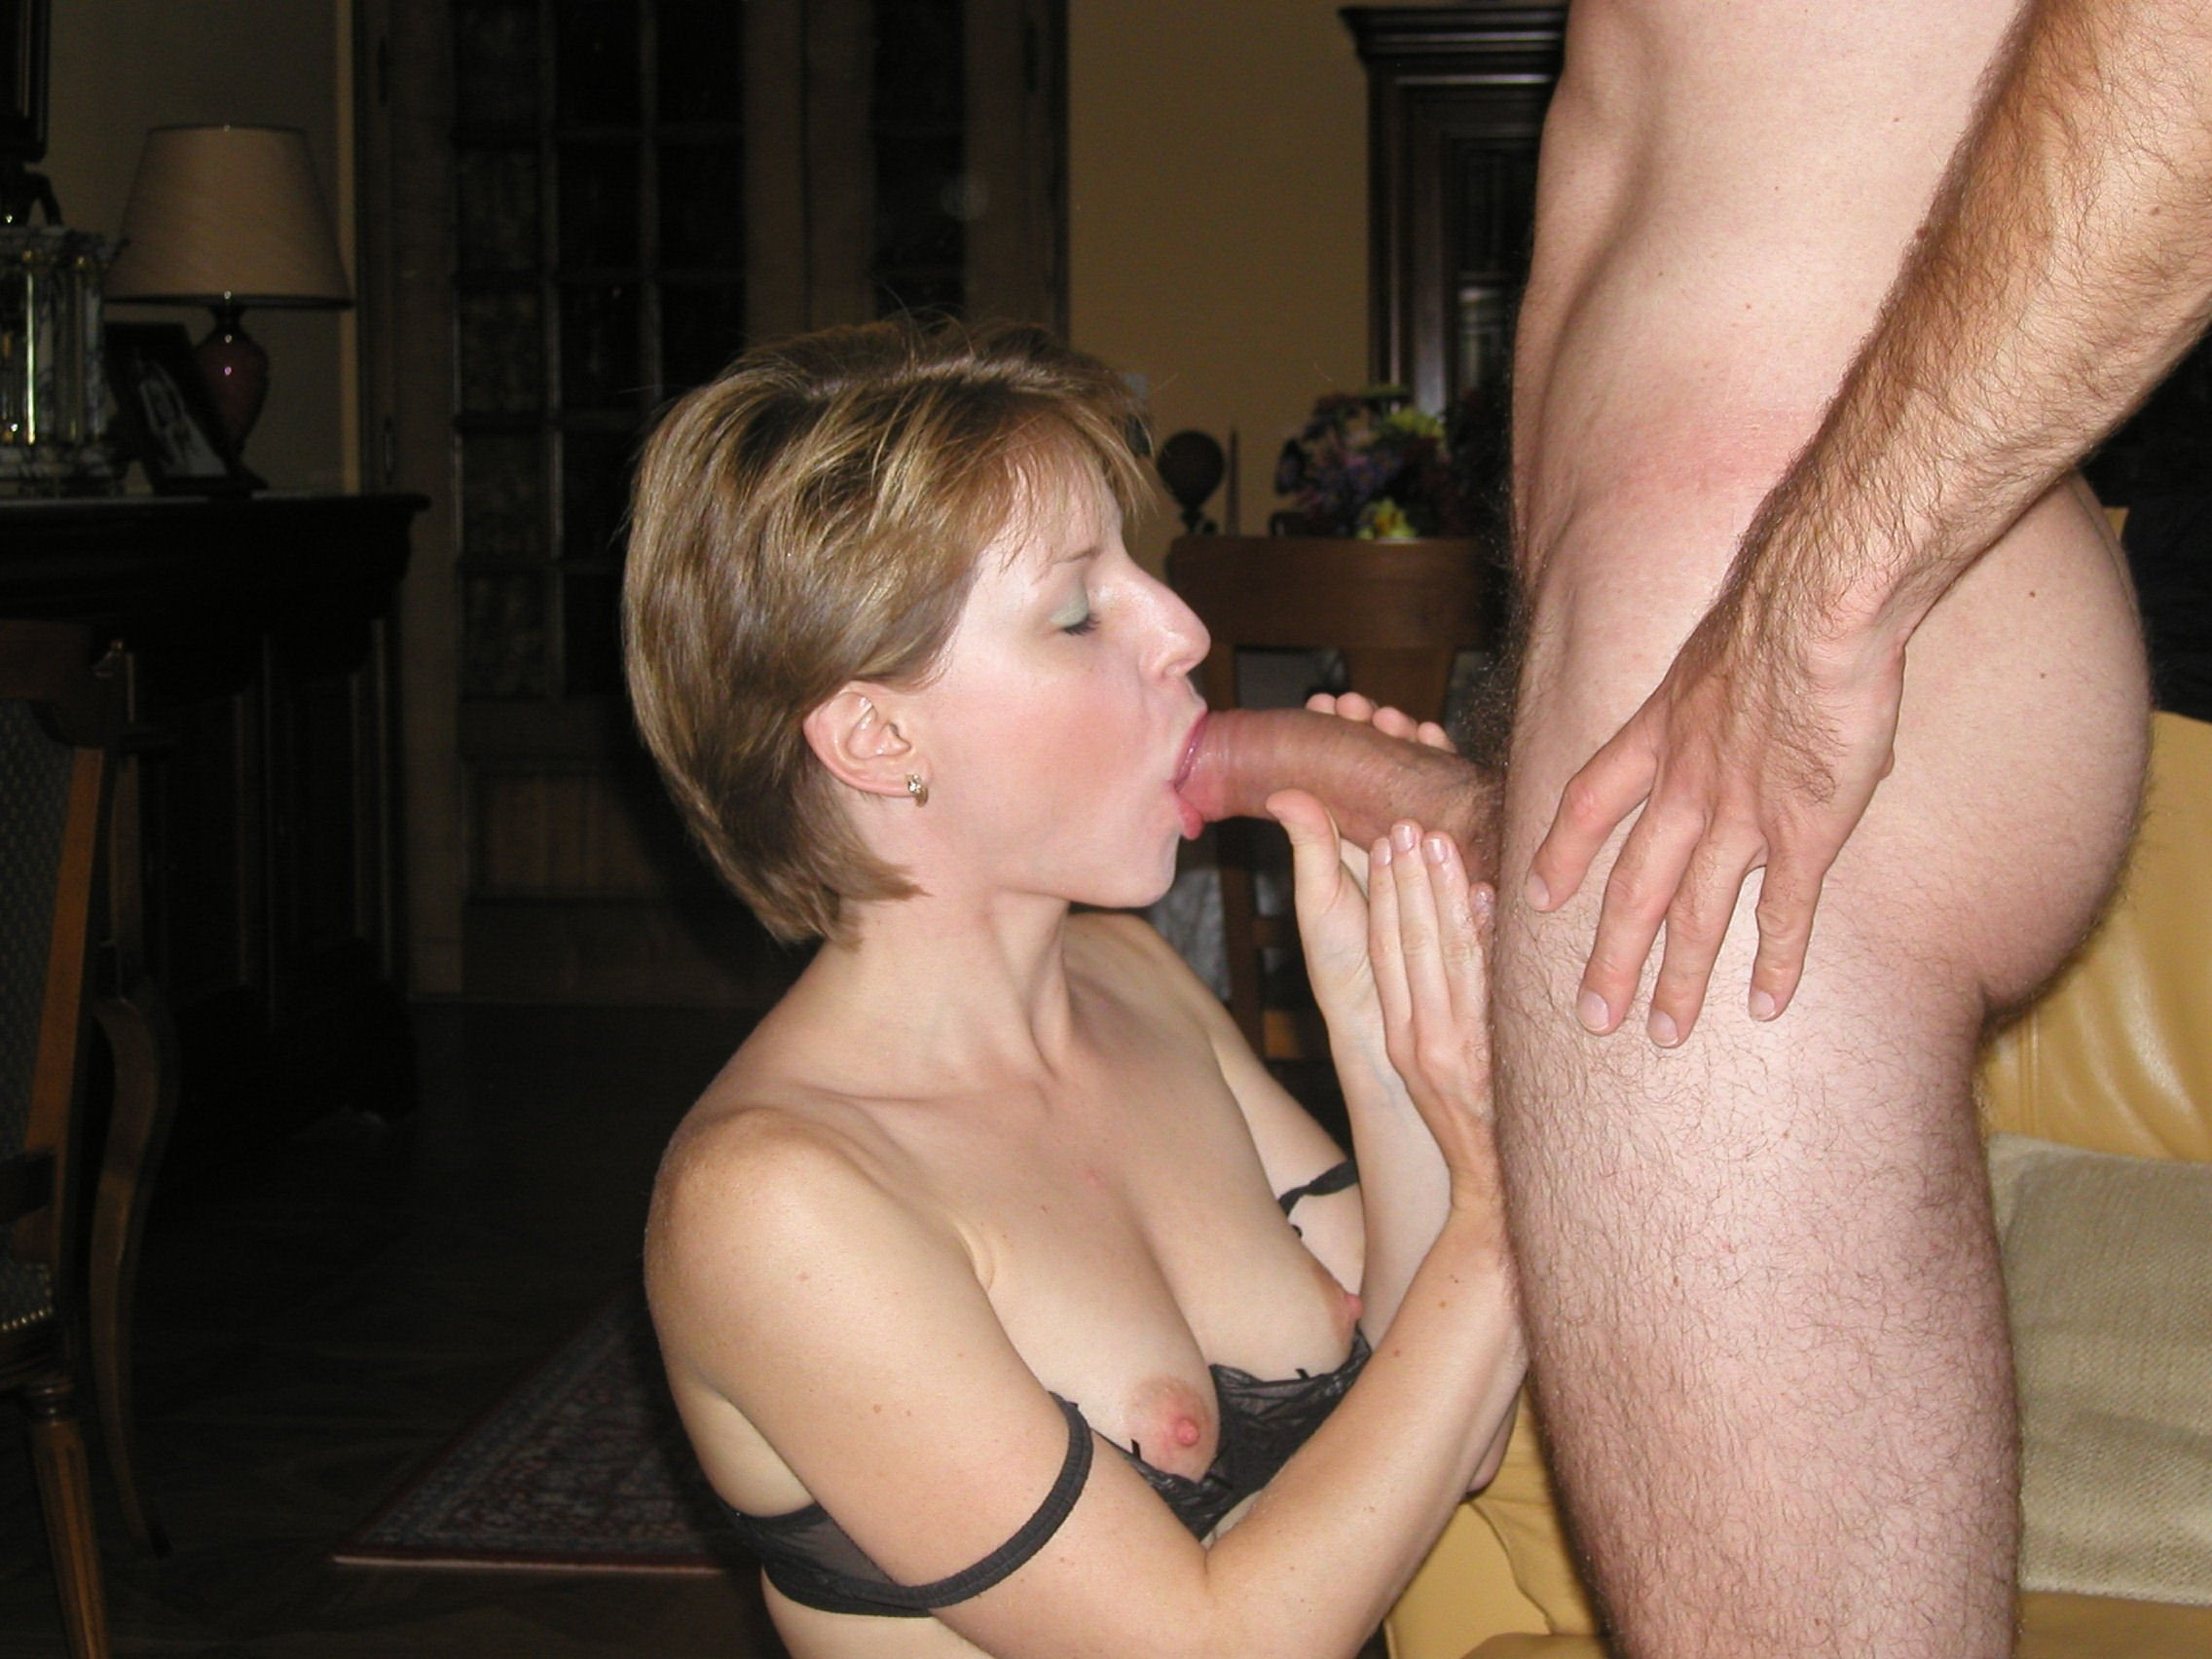 Stunning Wife With An Amazing Body And Lovely Breasts Giving Lover A Blowjob